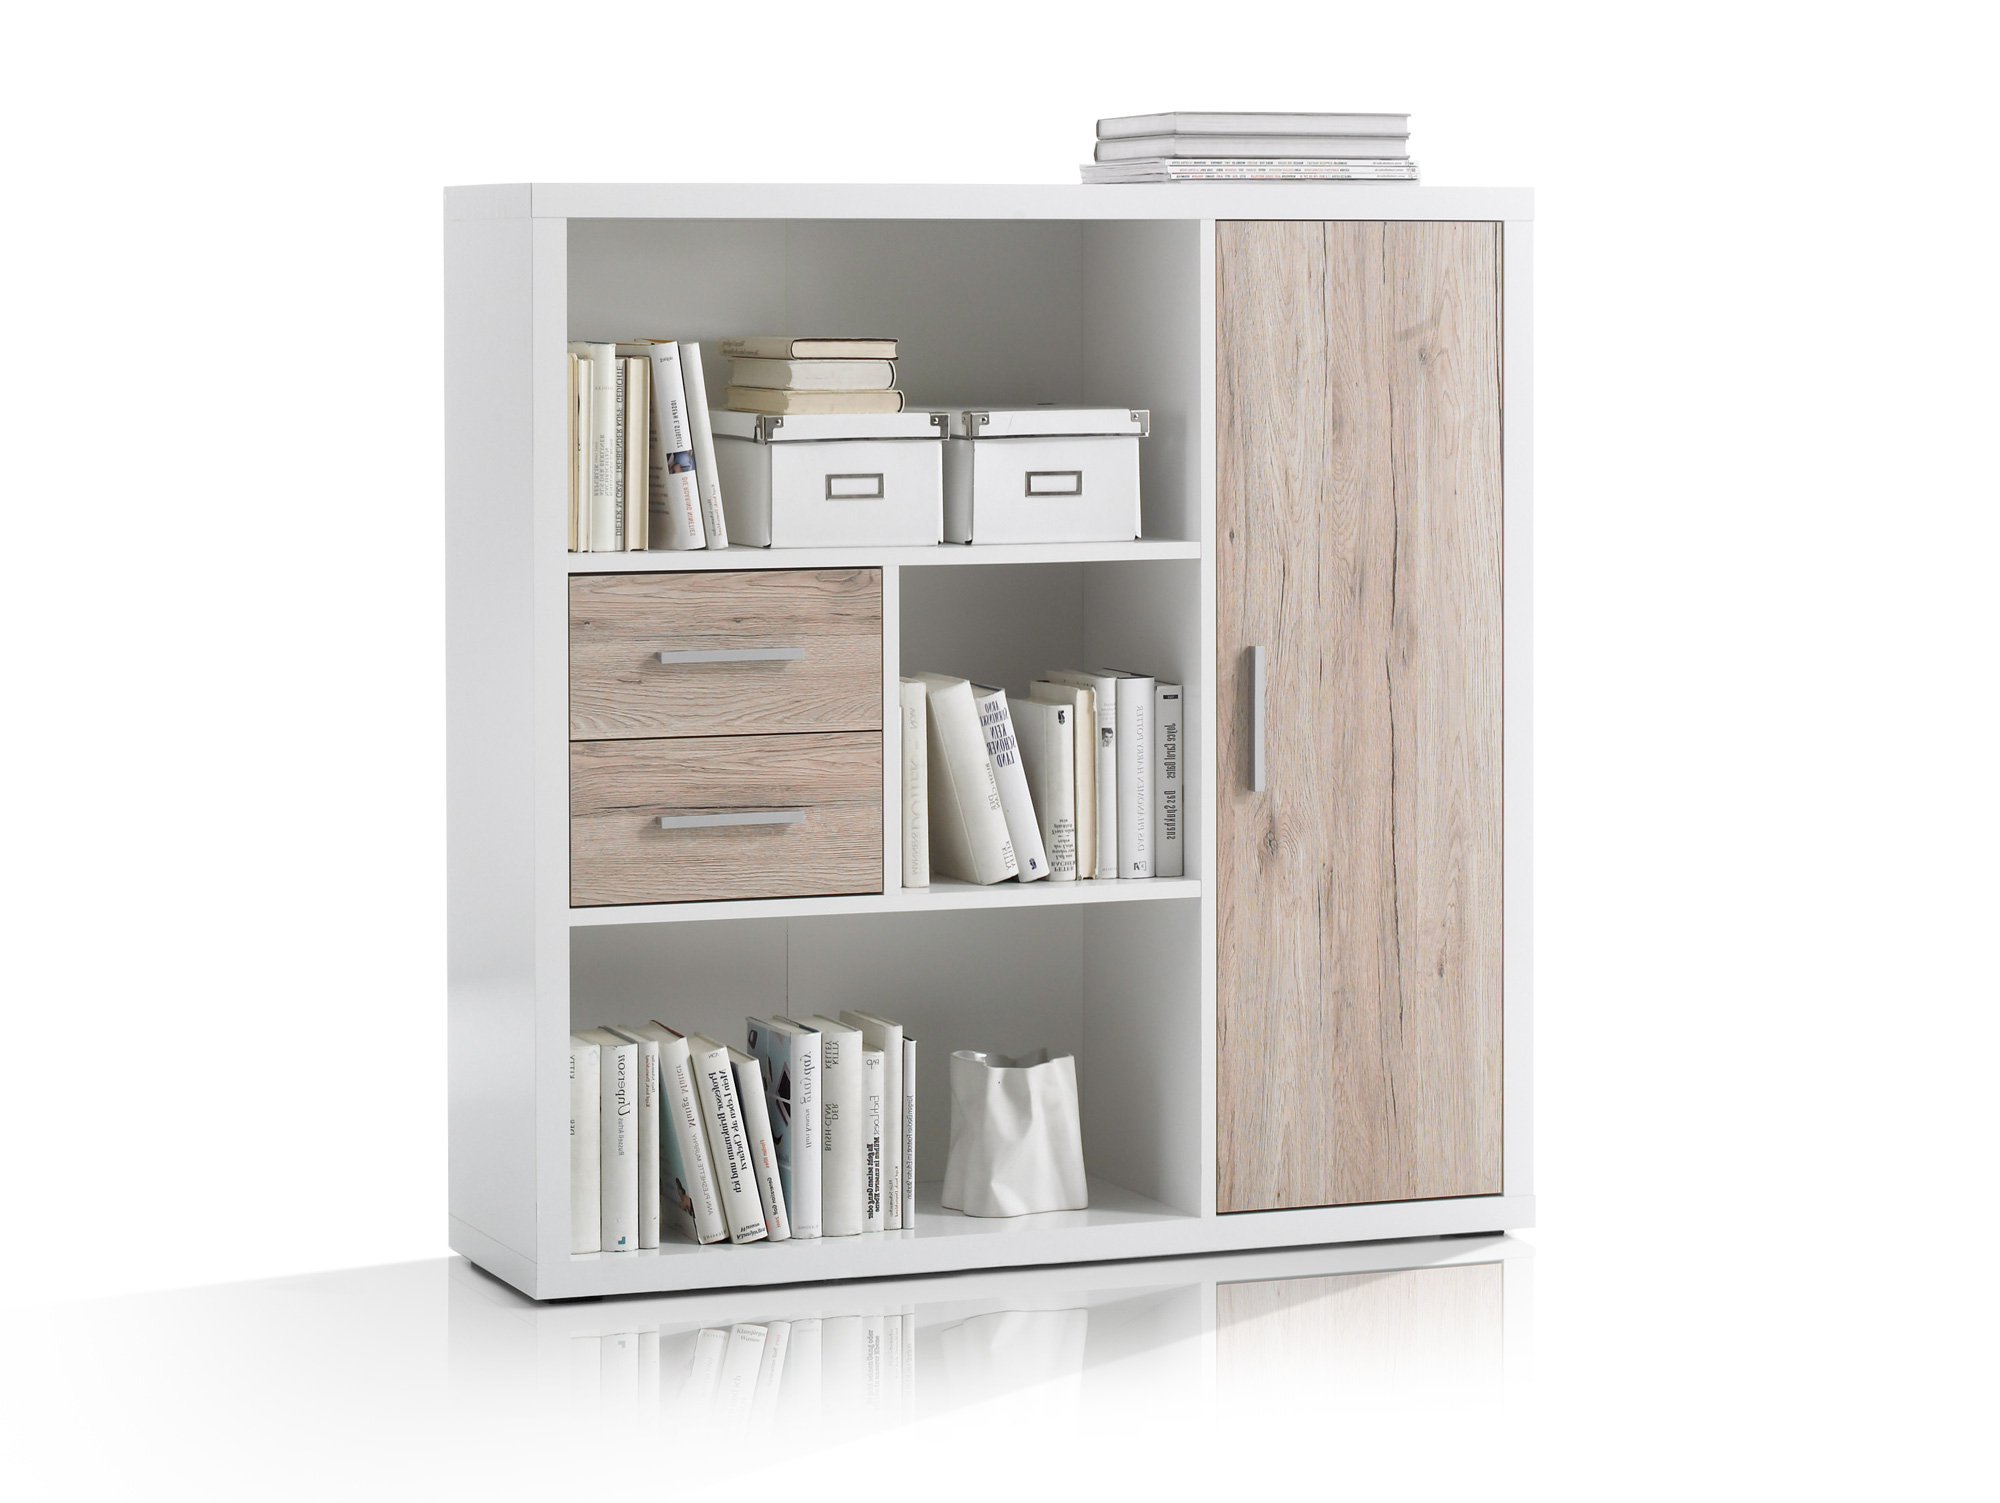 Highboard San Remo Eiche : tokio highboard weiss eiche san remo hell ~ Bigdaddyawards.com Haus und Dekorationen